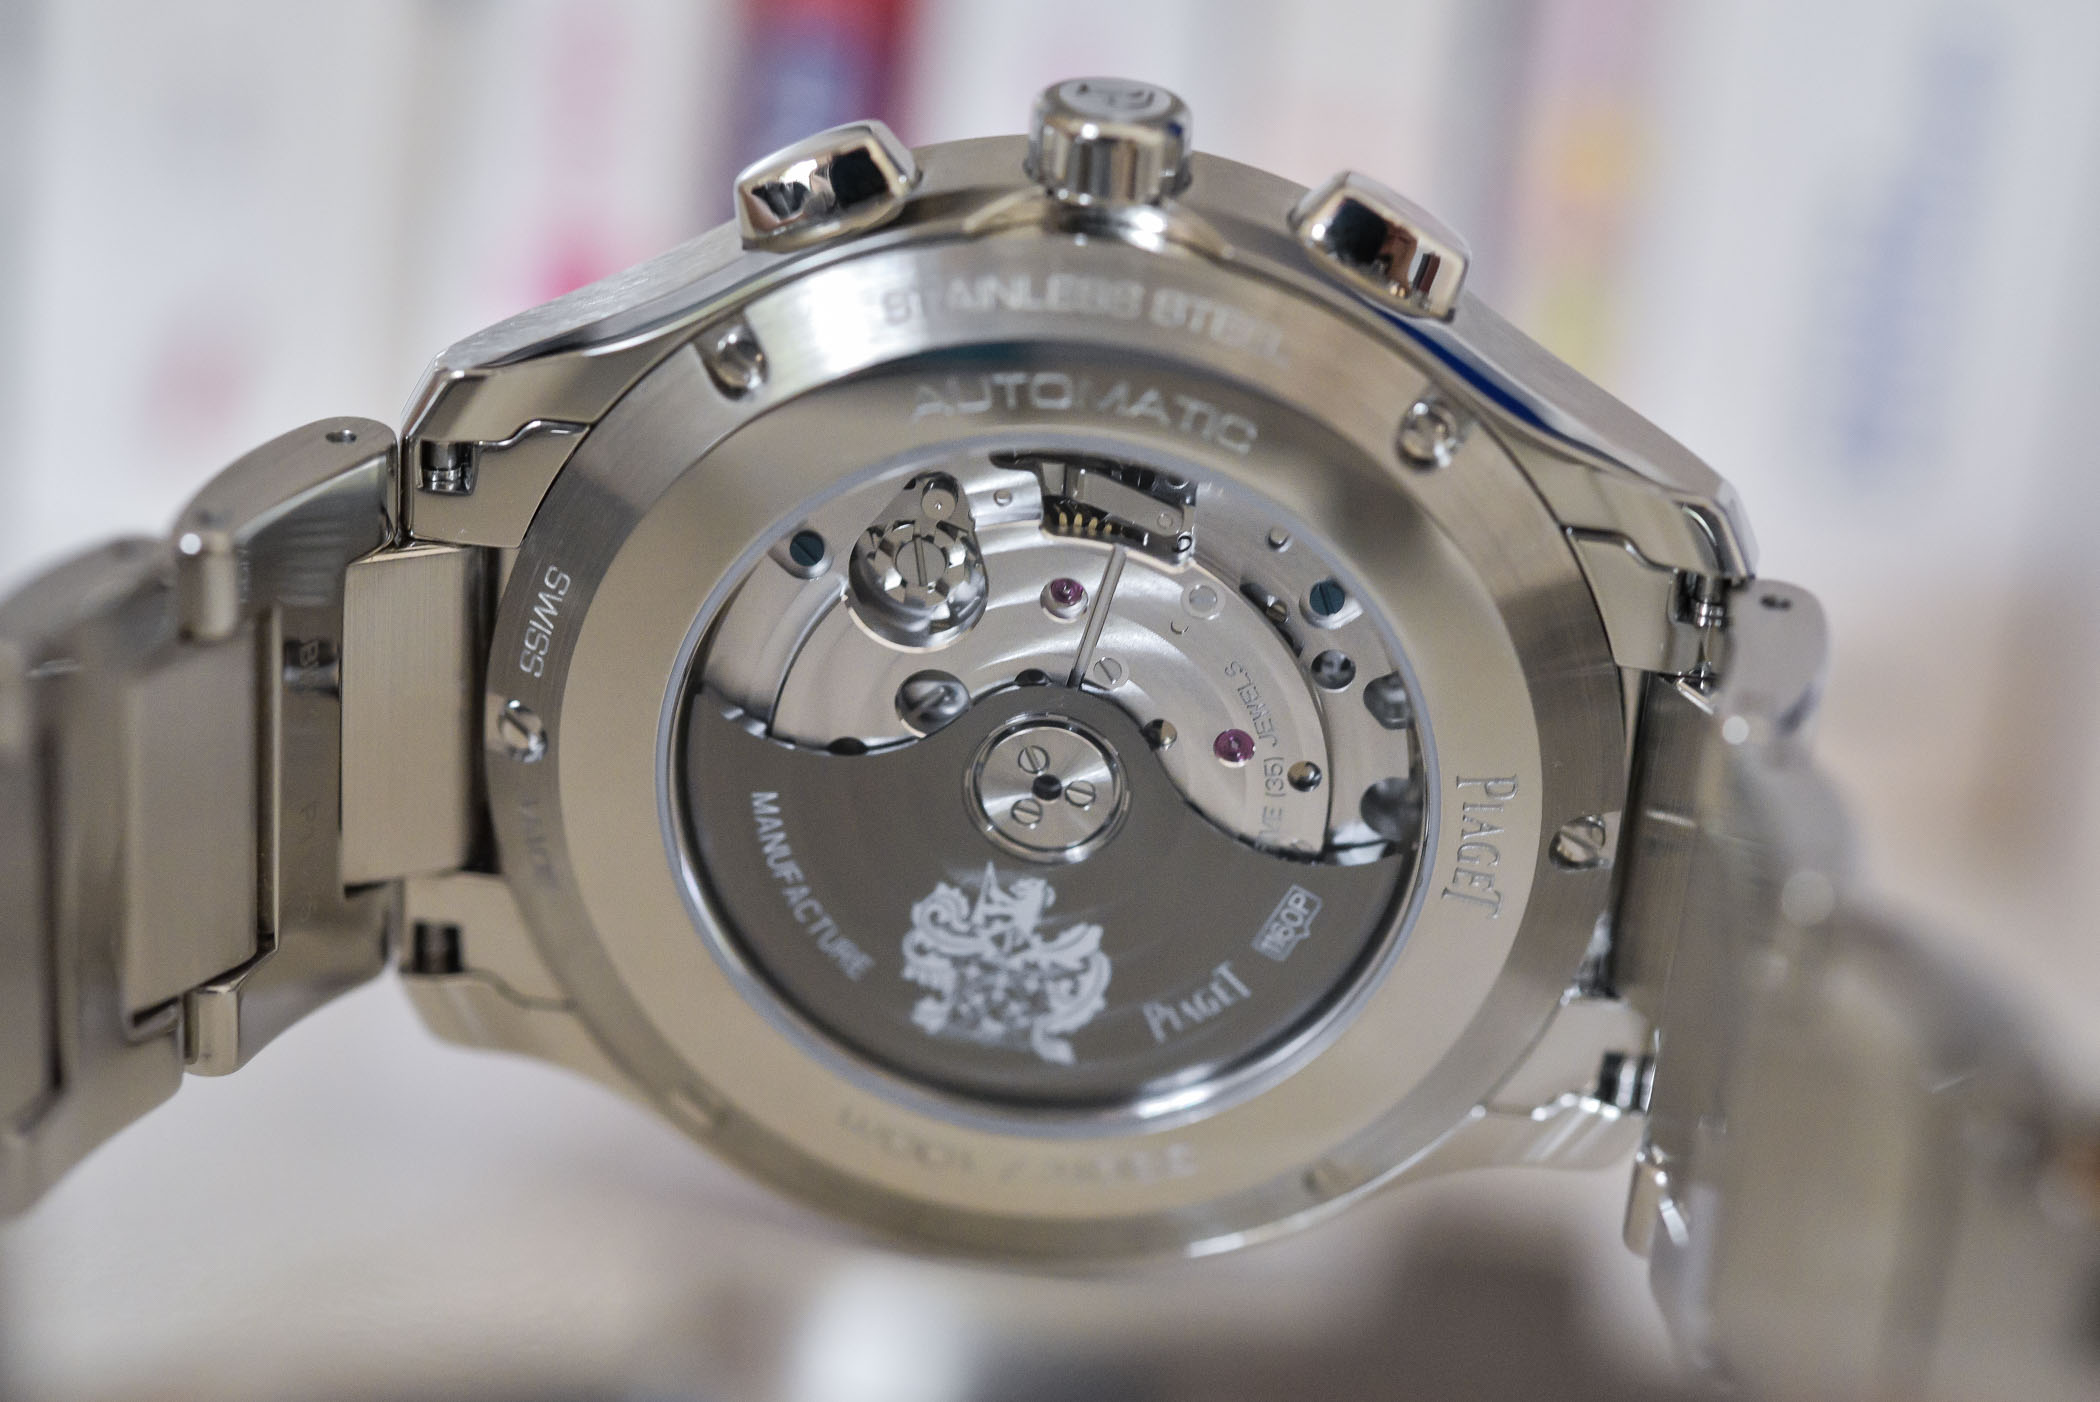 Piaget Polo S Chronograph - Review